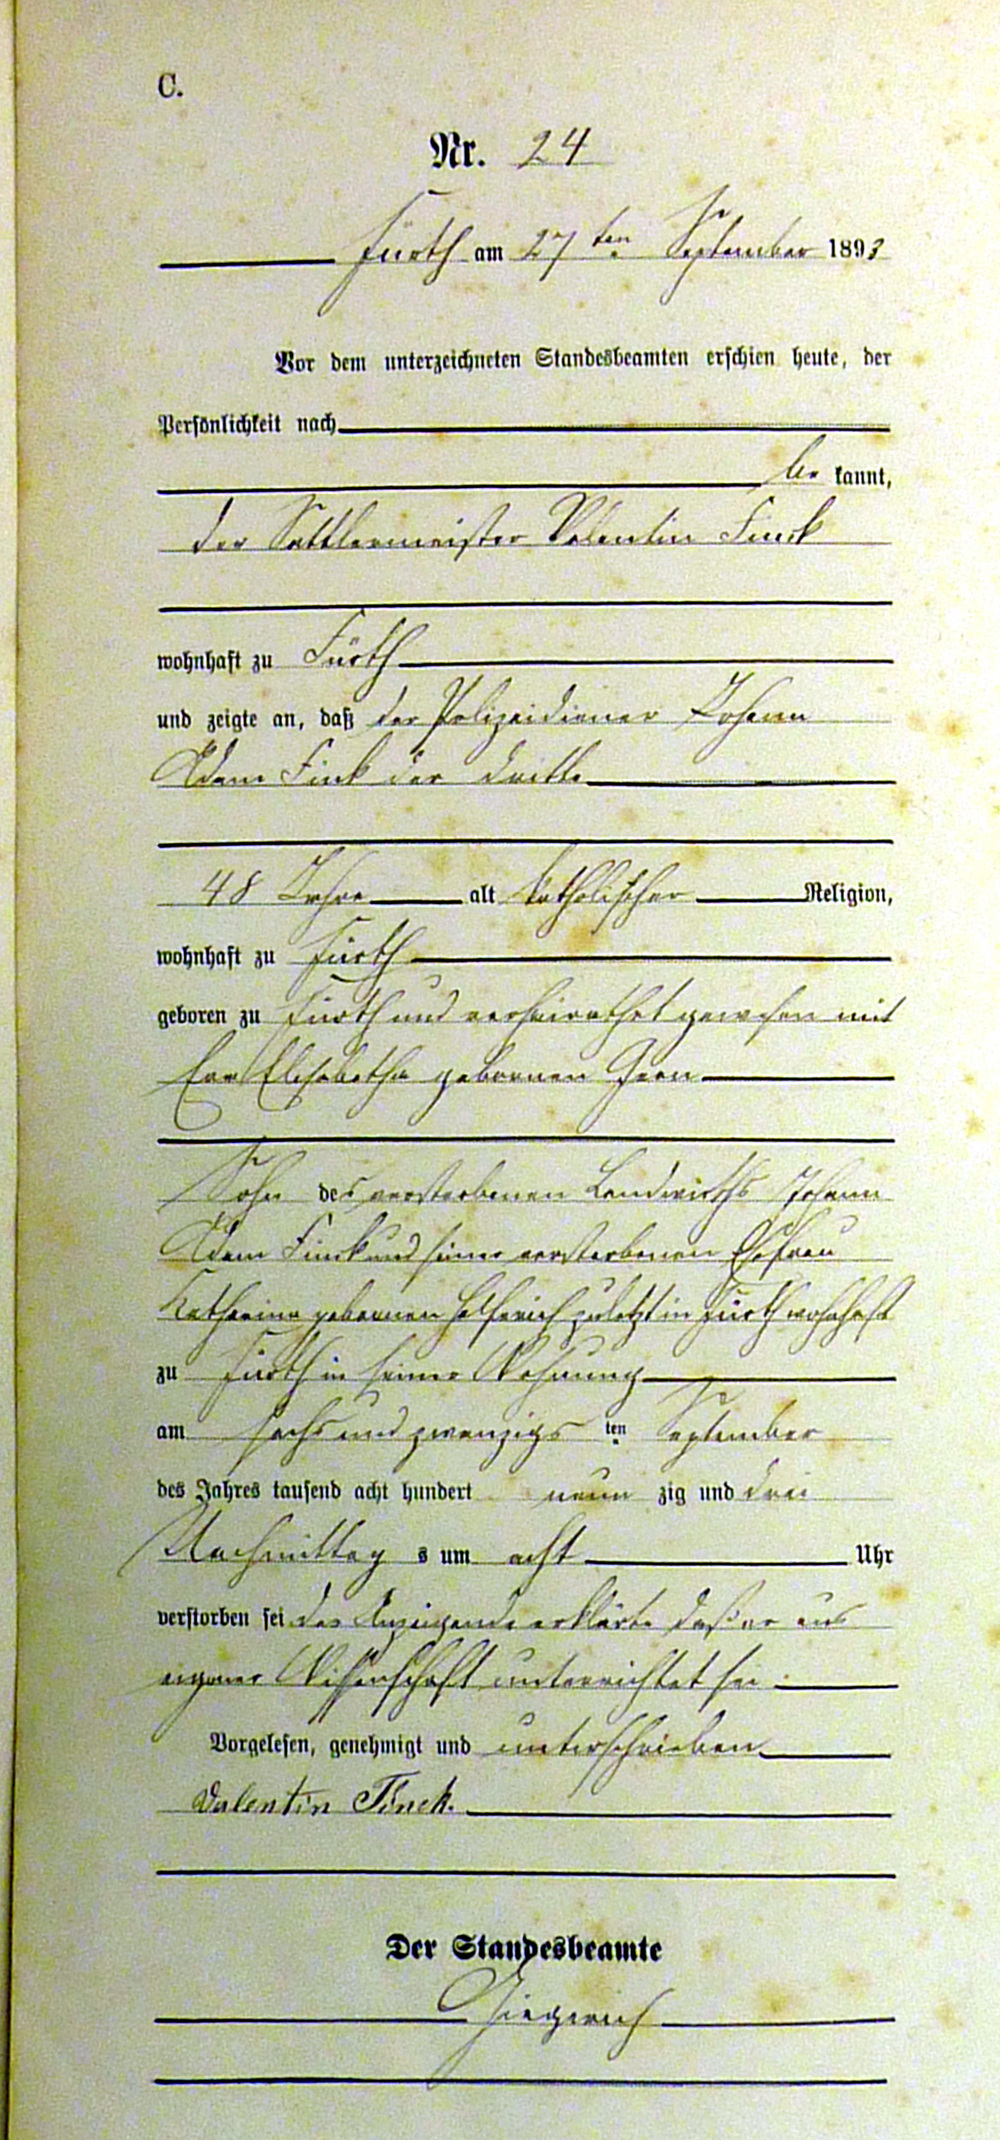 Civil Death Registration, Fürth, Darmstadt, Hessen, Germany, 1893